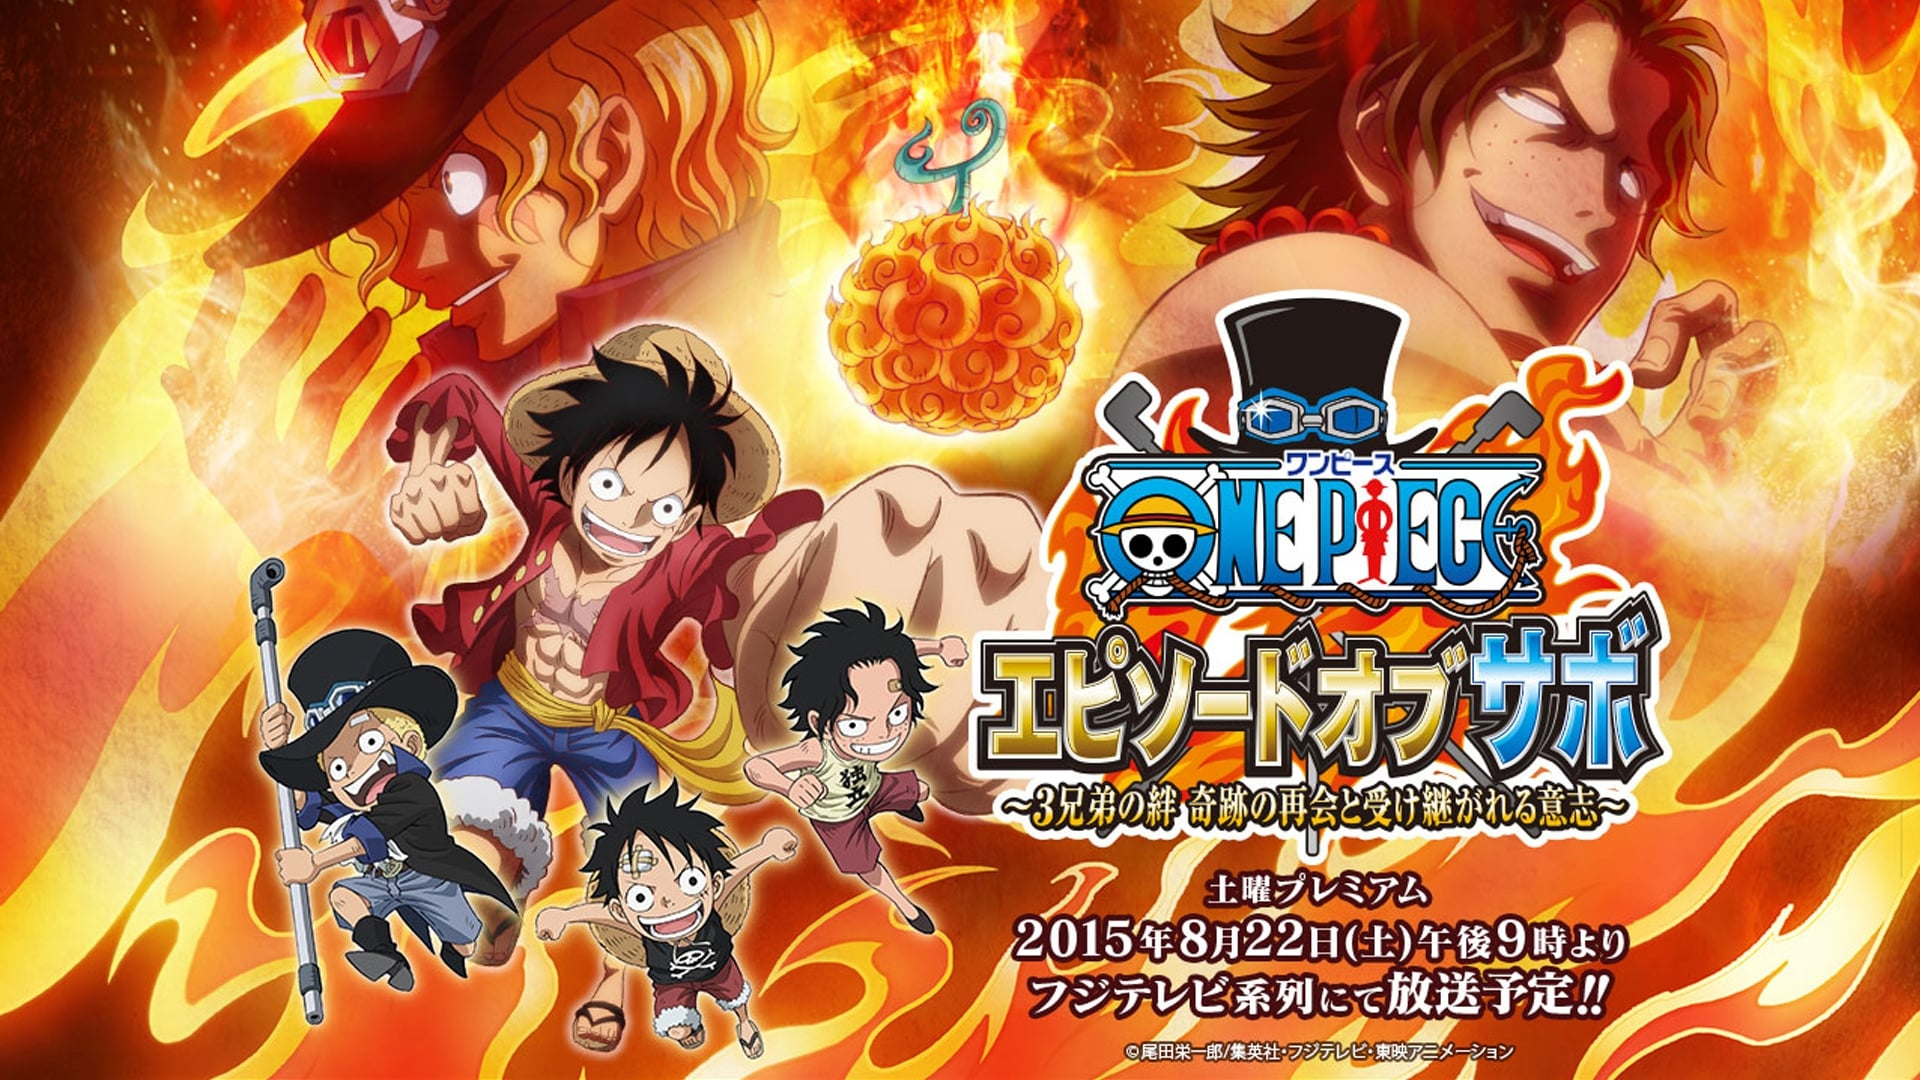 One Piece Season 0 :Episode 29  Episode of Sabo: Bond of Three Brothers